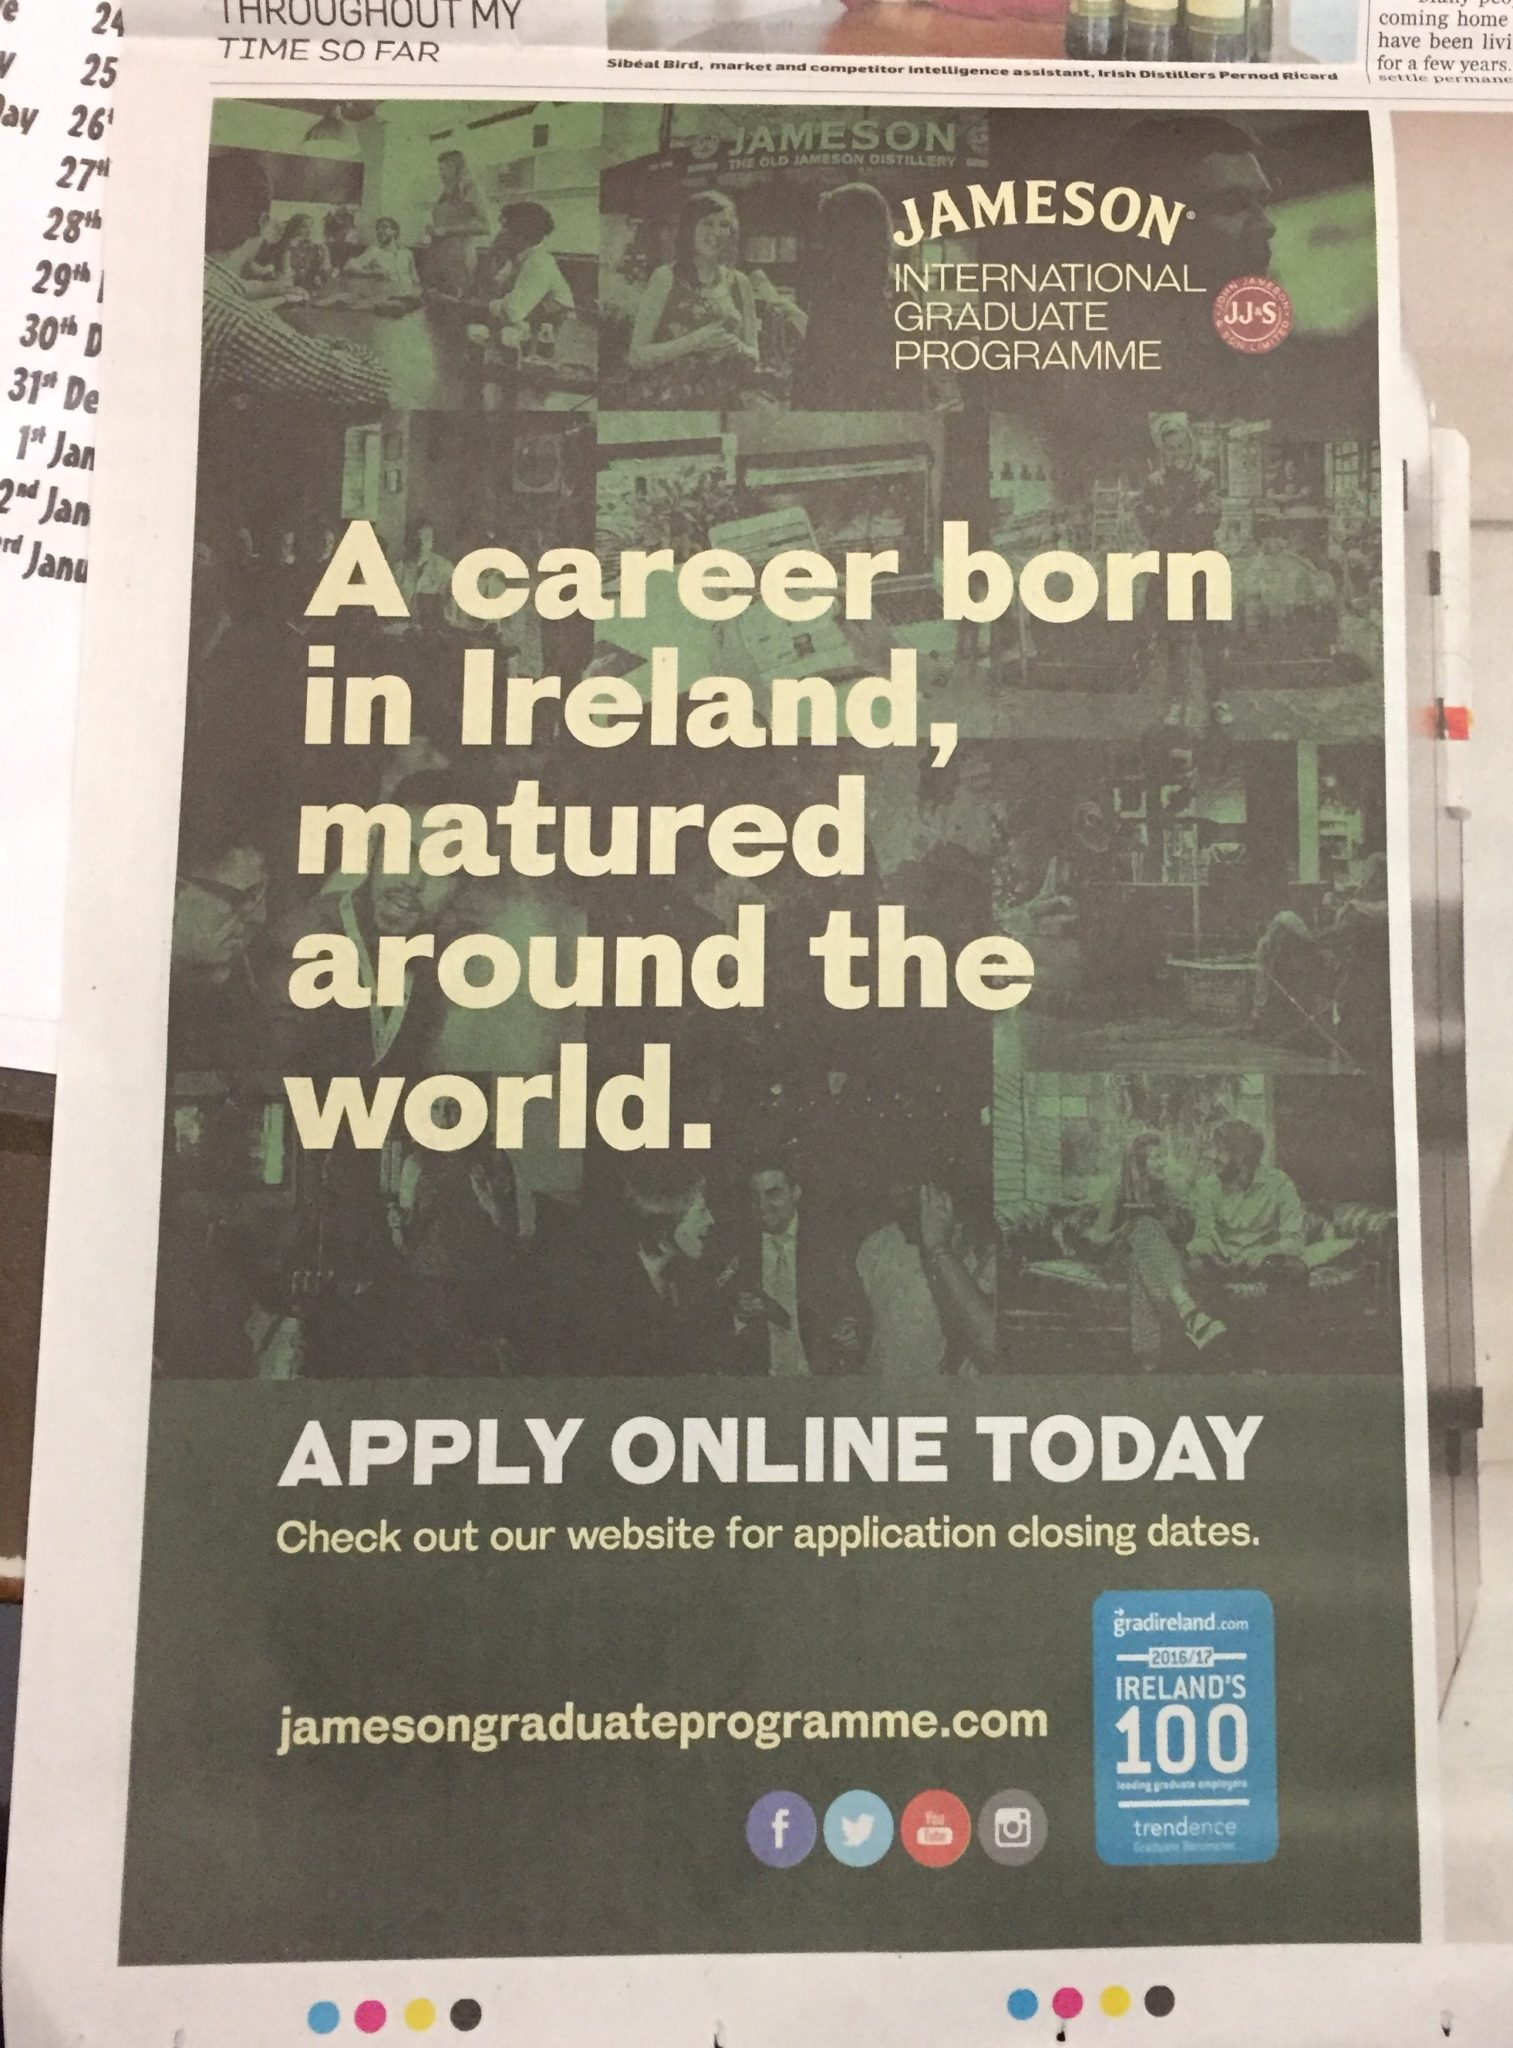 Jameson international graduate programme – a career born in Ireland, matured taping the world